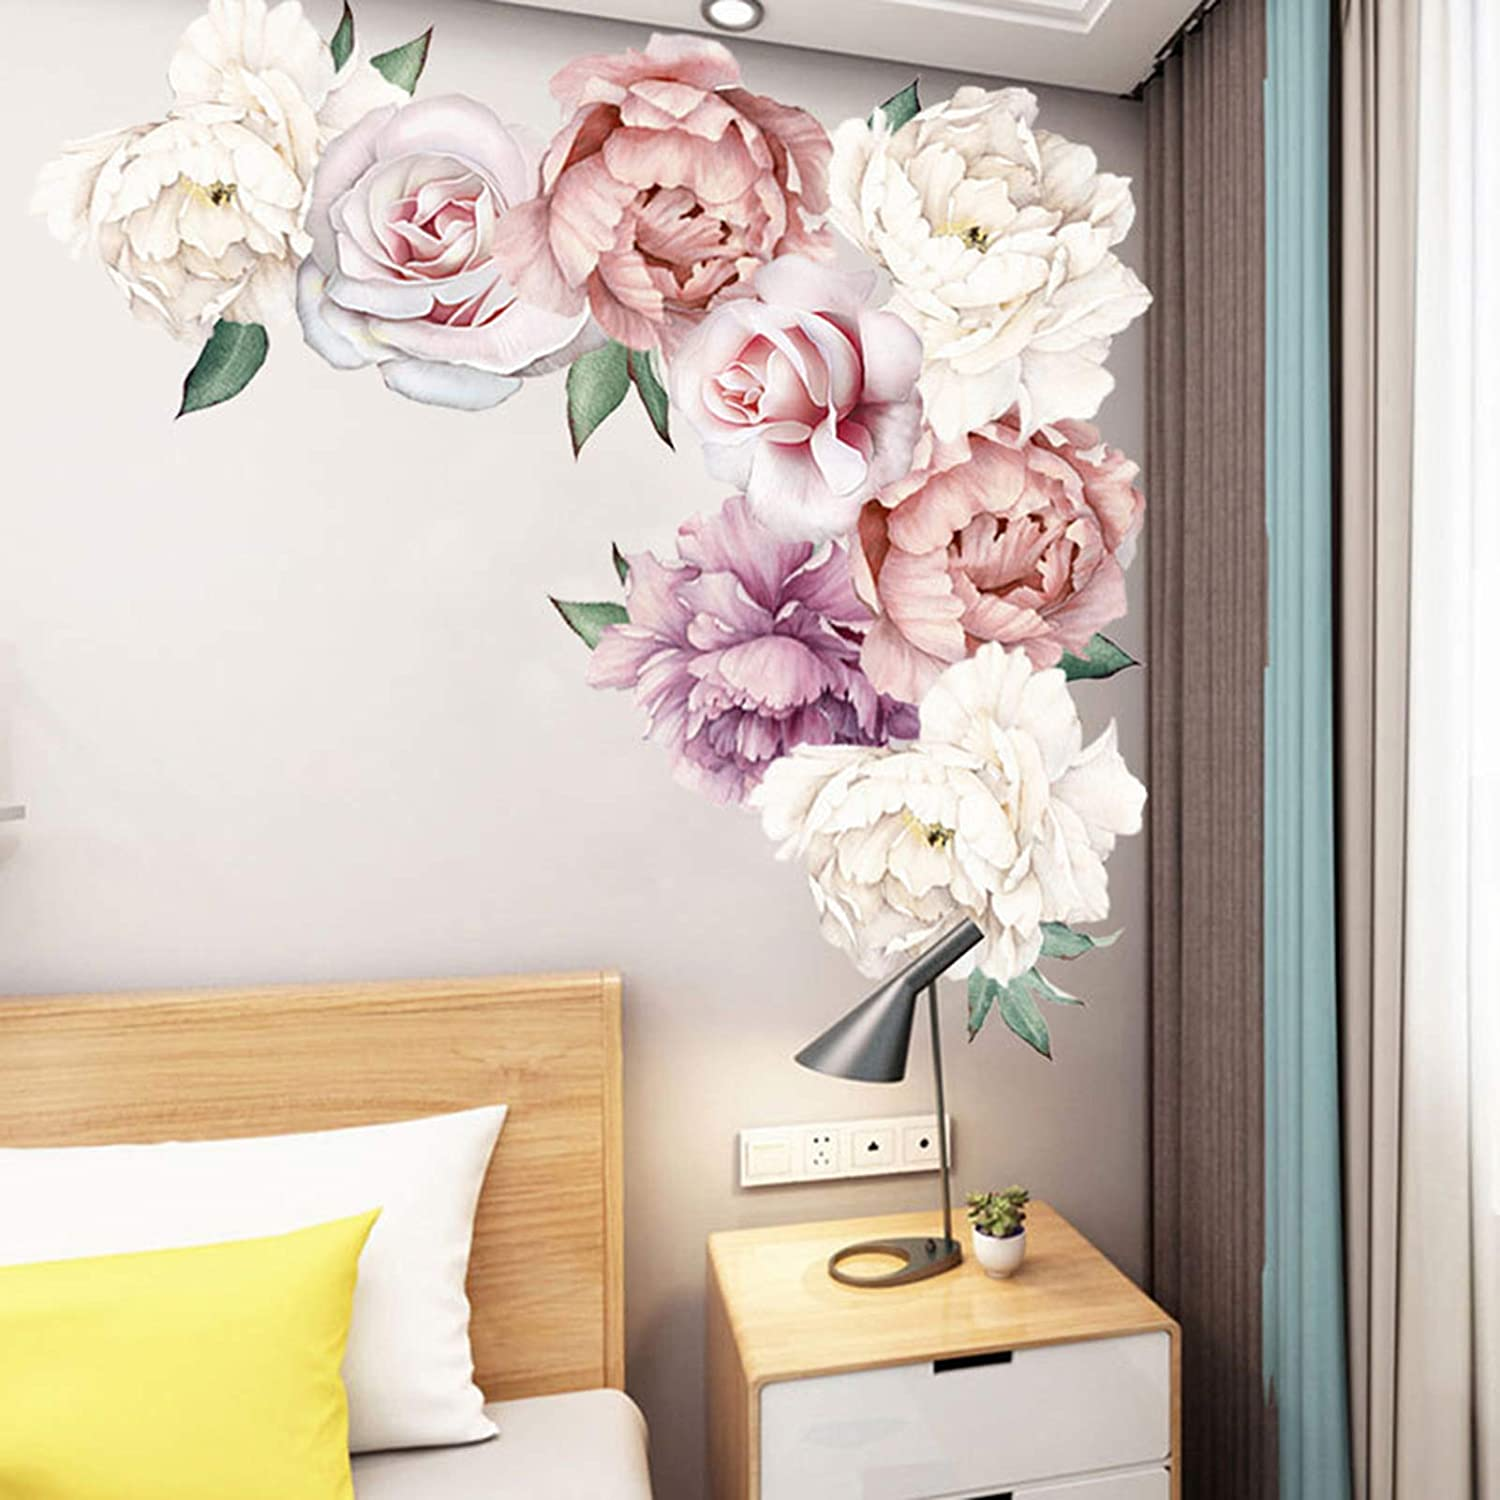 Peony Wall Decals Flowers Wall Stickers, Peonies Roses Floral Wall Posters Delicate Flowers Wall Sticker, Vinyl Wall Decor for Bedroom Living Room Girls Room